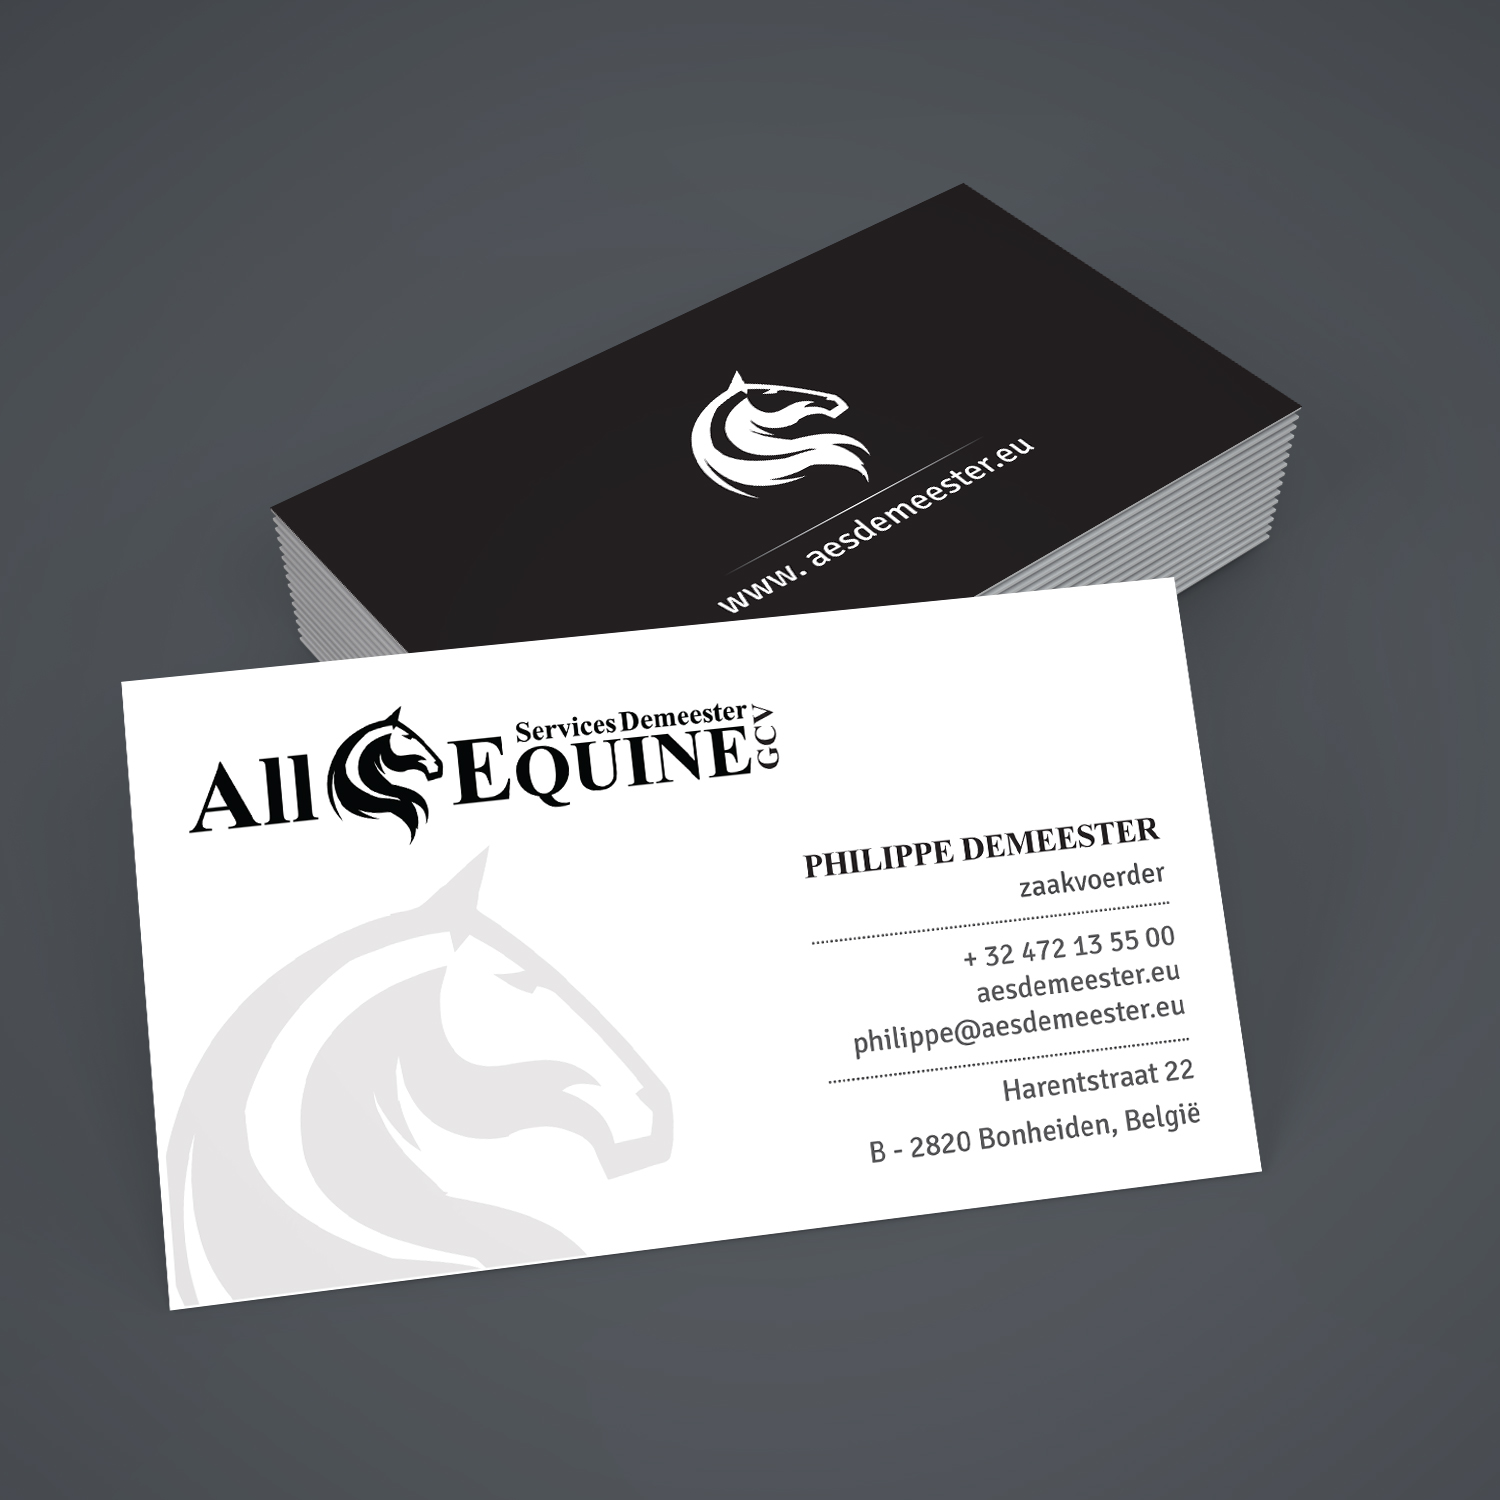 Upmarket serious business business card design for all equine business card design by creative jiniya for all equine services demeester design 11852775 colourmoves